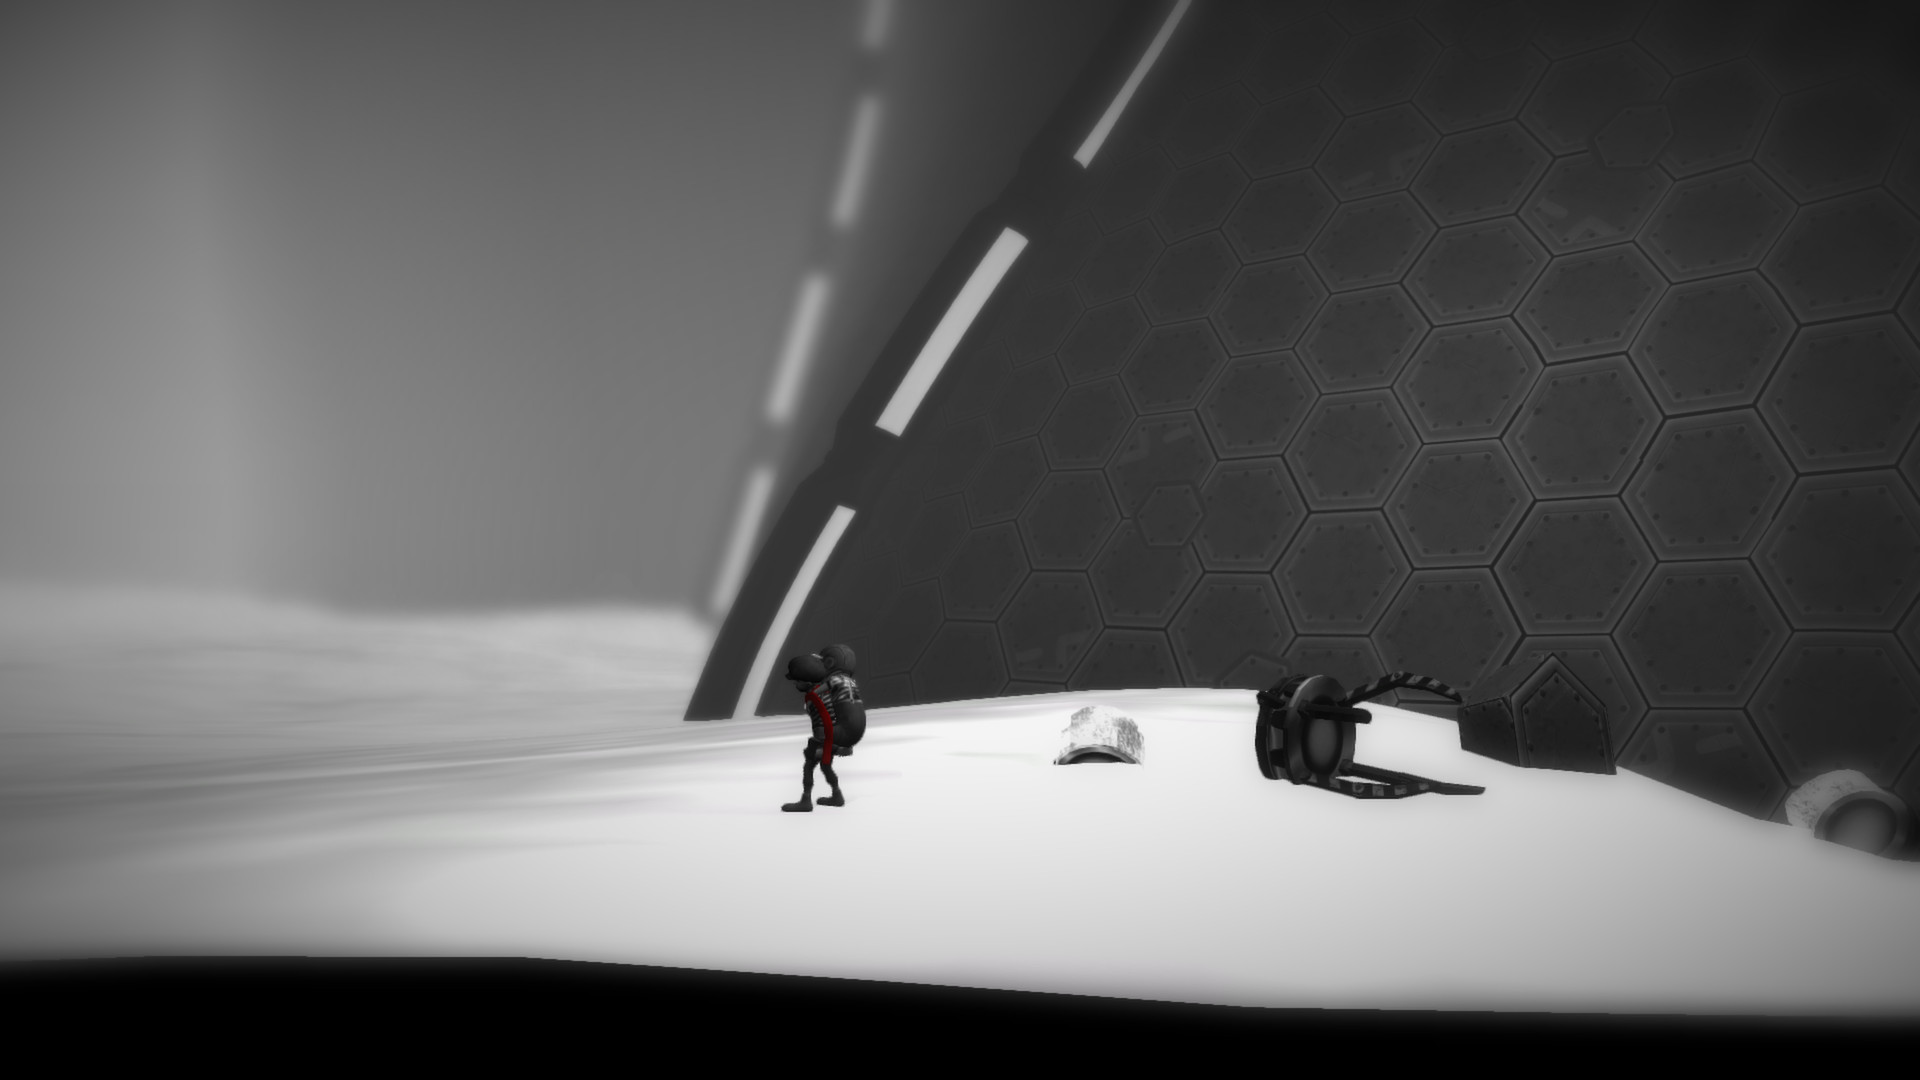 Monochroma in game 0206 4